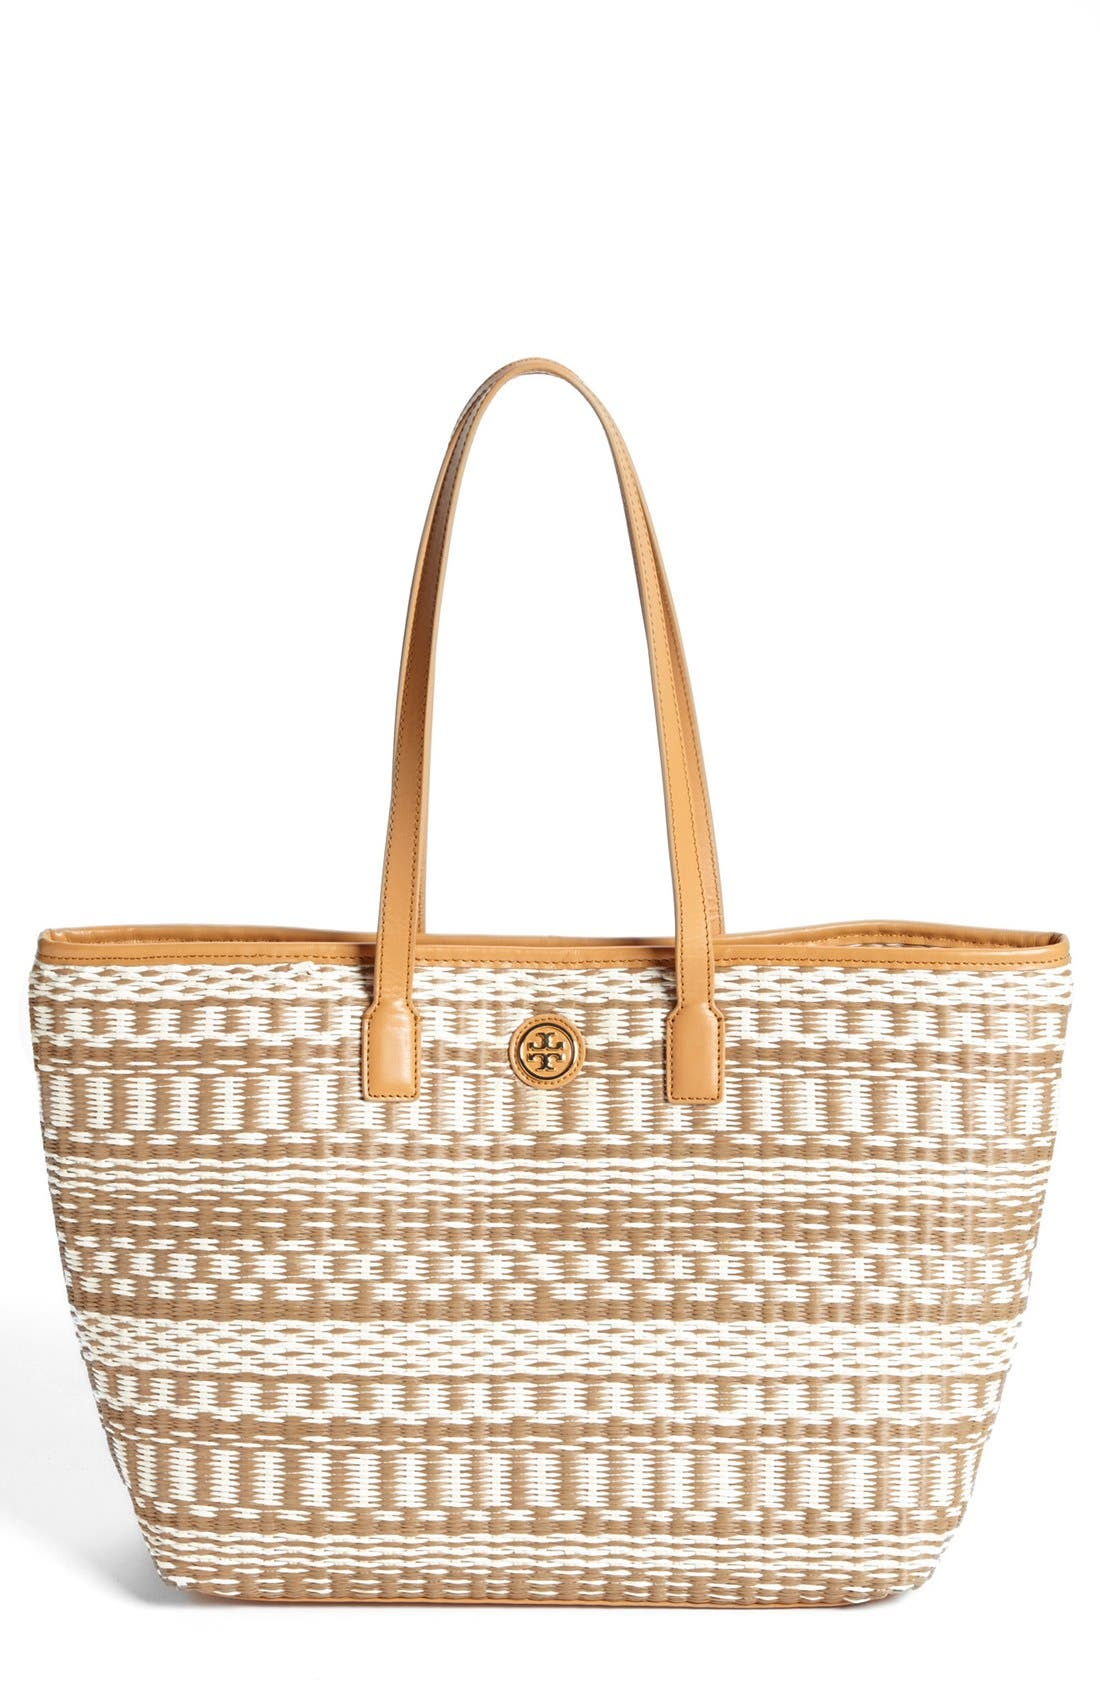 Main Image - Tory Burch 'Small Stripe' Straw Tote